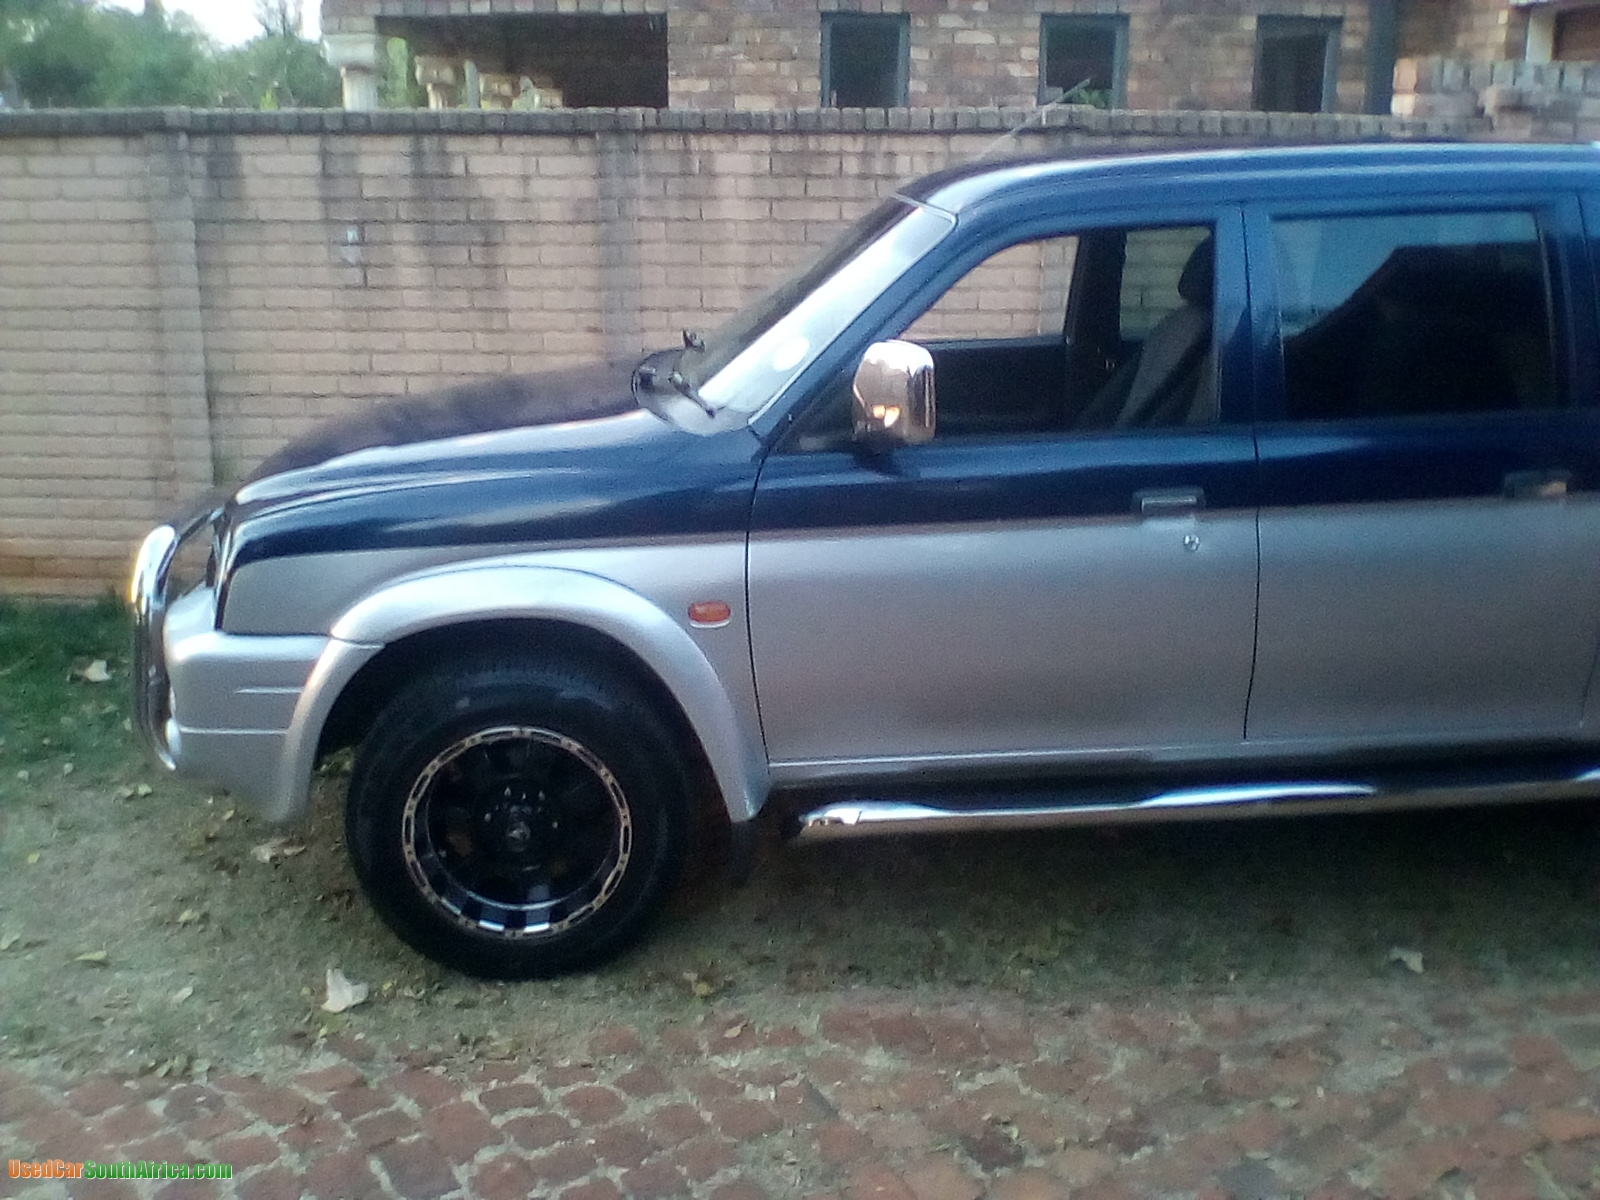 2006 mitsubishi colt 3000lv64×4 used car for sale in pretoria north gauteng south africa usedcarsouthafrica 0